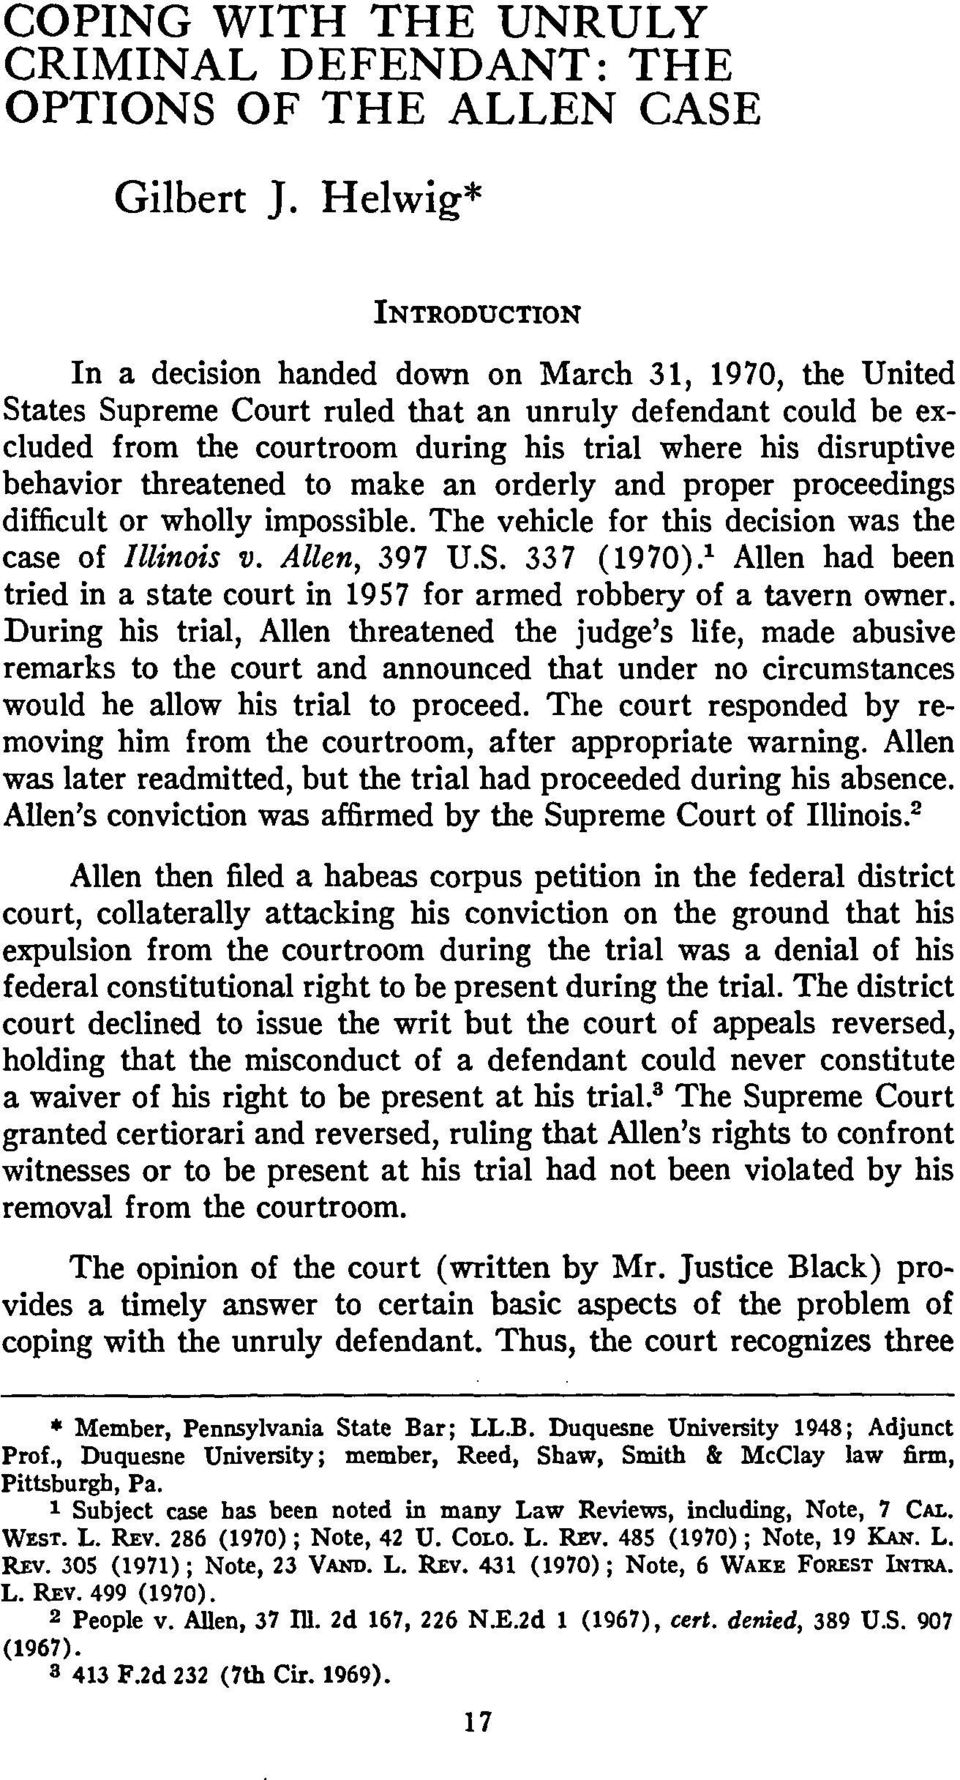 disruptive behavior threatened to make an orderly and proper proceedings difficult or wholly impossible. The vehicle for this decision was the case of Illinois v. Allen, 397 U.S. 337 (1970).